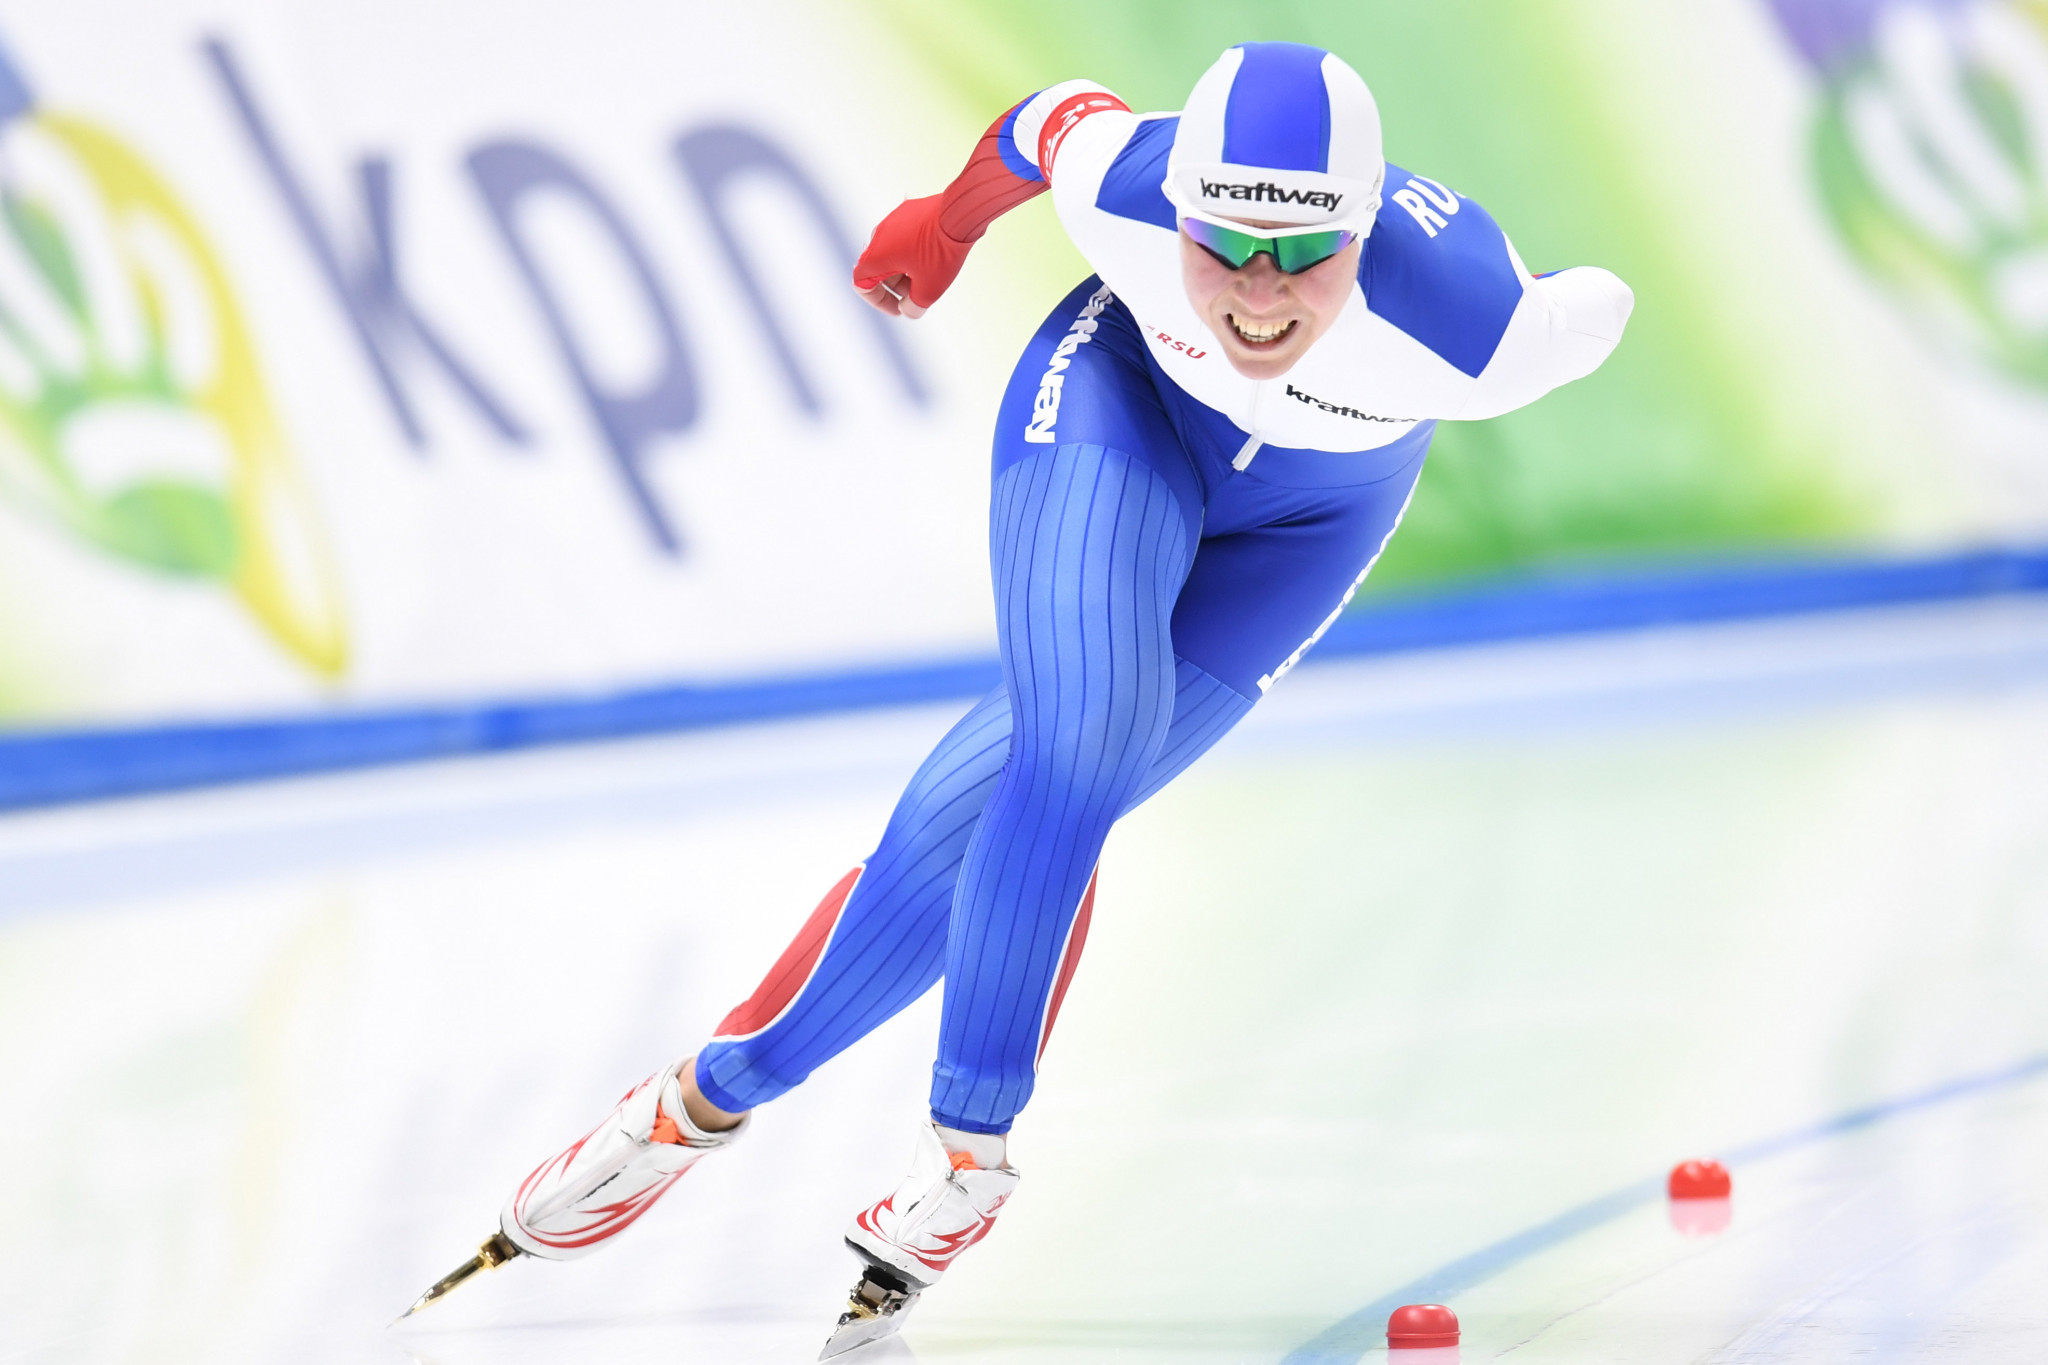 Speed skater Olga Graf has become the first Russian athlete cleared to compete at next month's Winter Olympic Games in Pyeongchang to turn down an invitation ©Getty Images